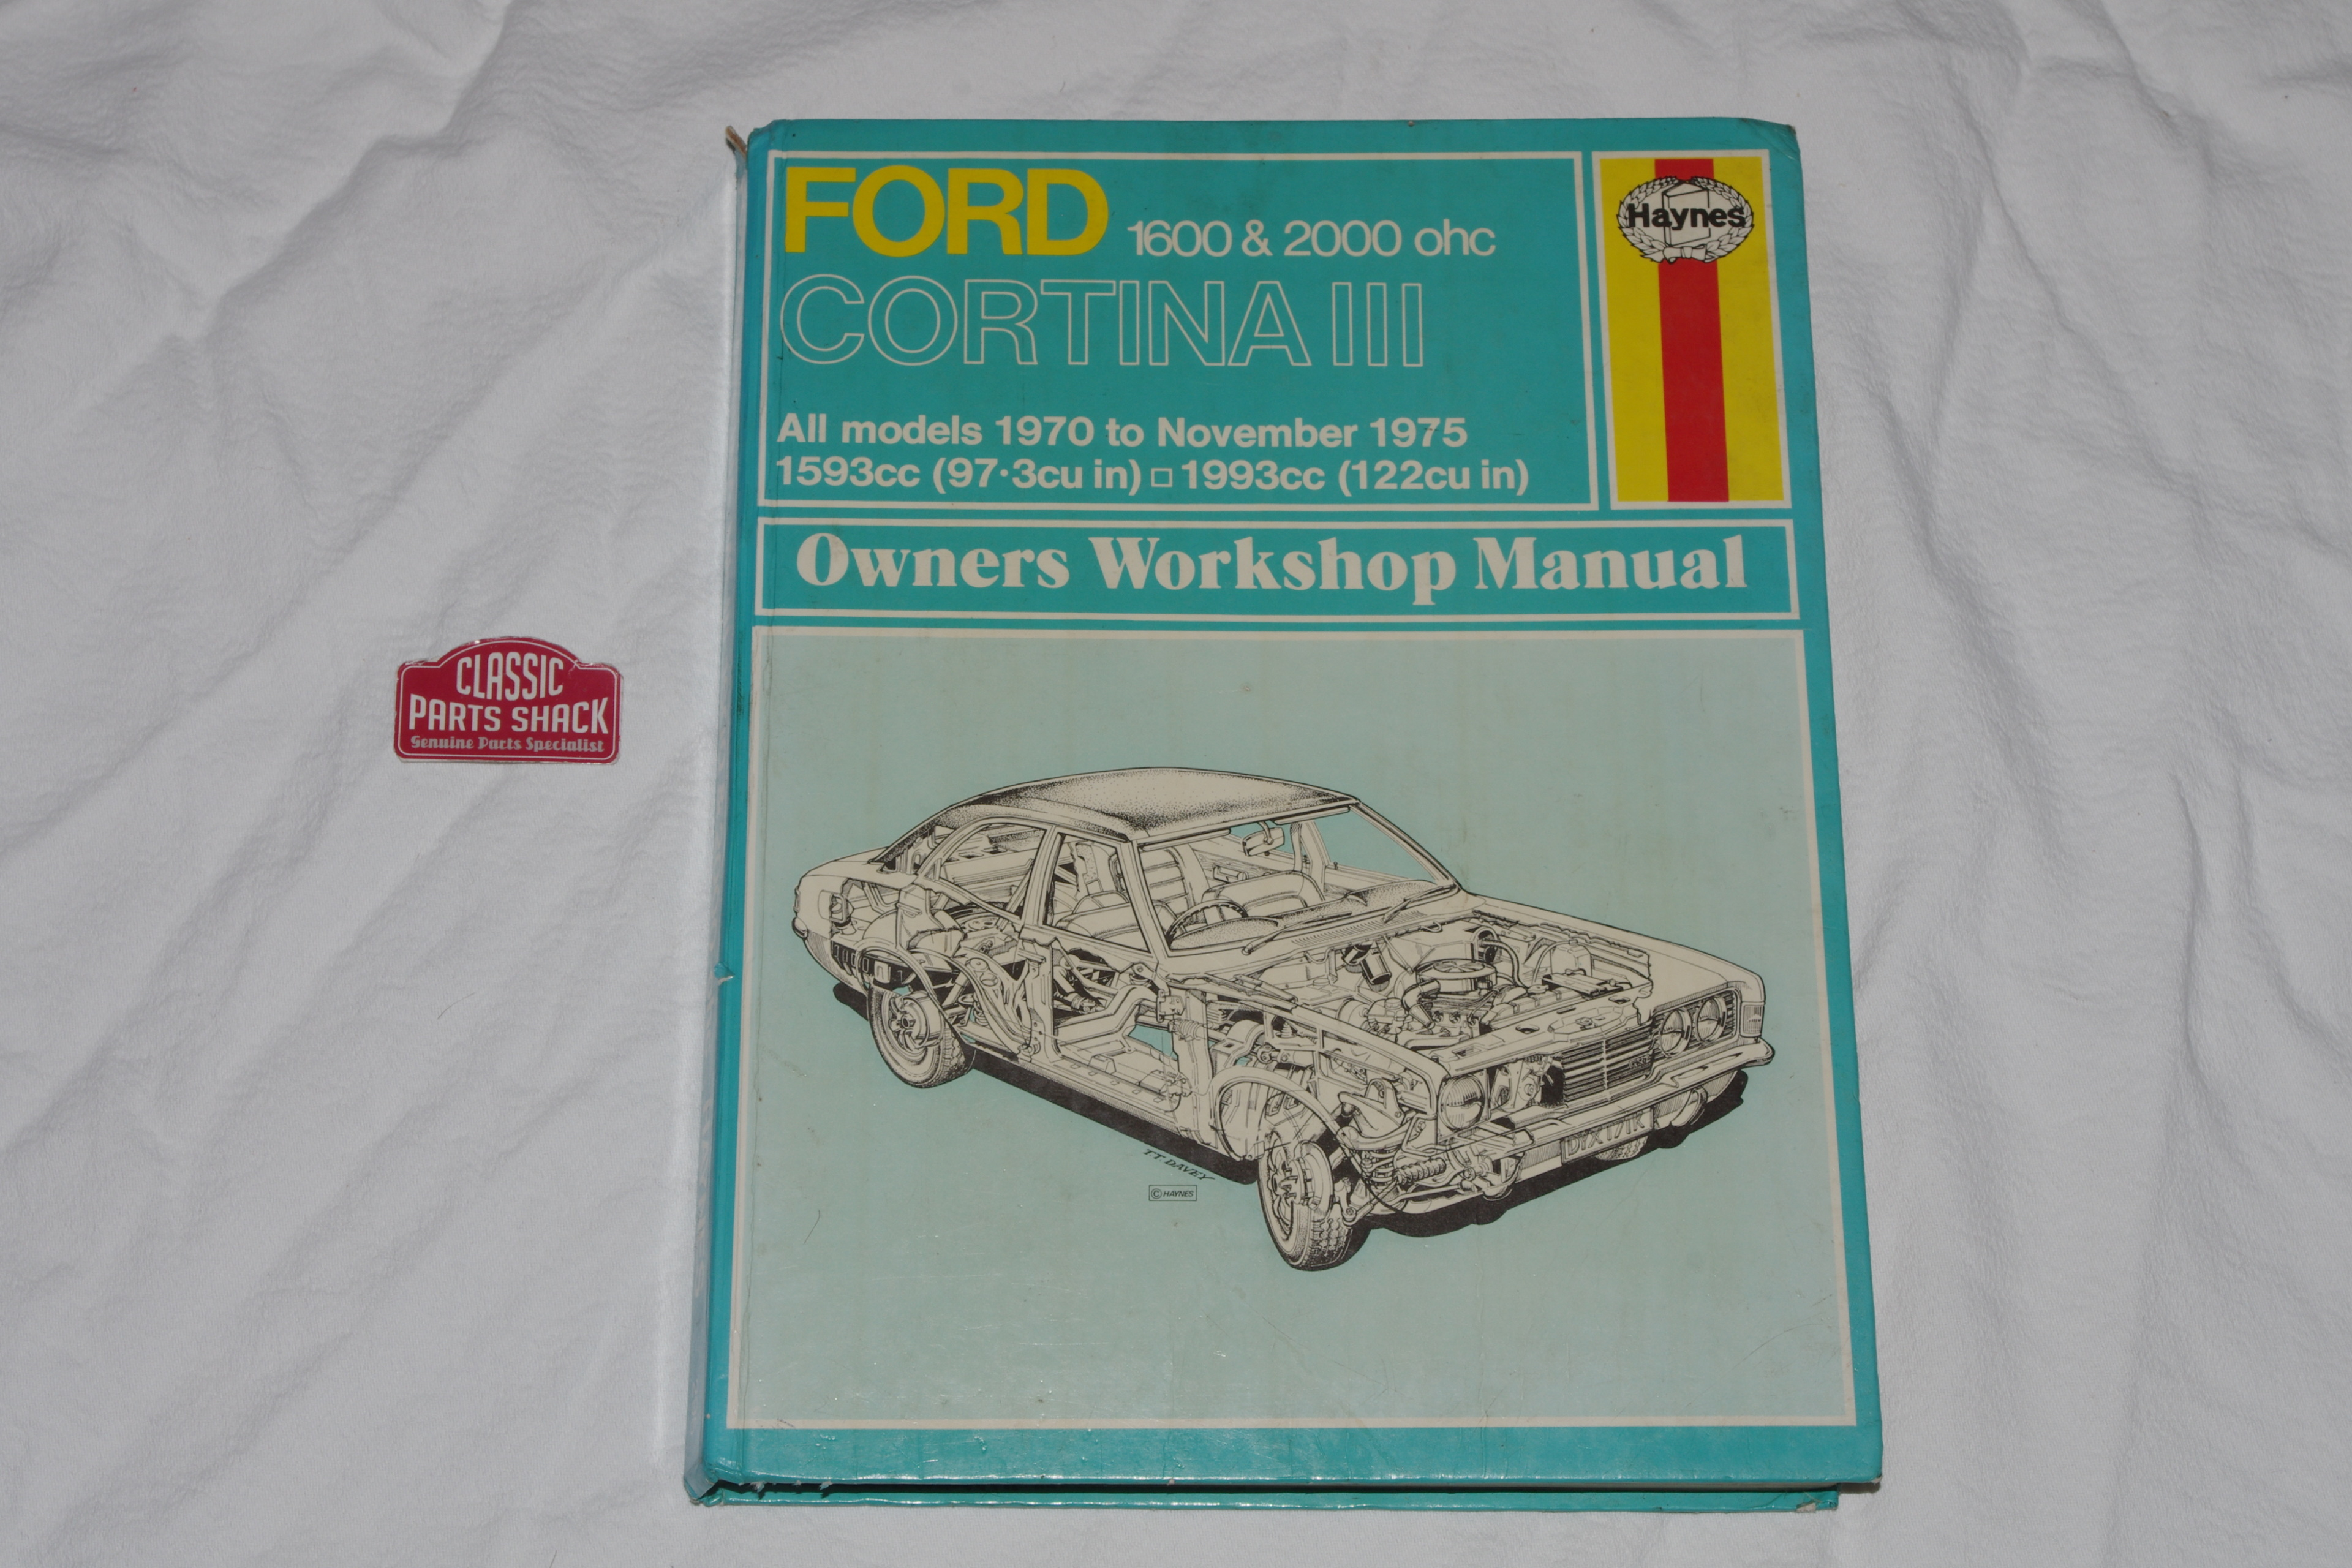 Ford Cortina Mk3 GLX 1.6 2.0 ohc (all models) Haynes Manual used vol 295,  for sale at Classic Parts Shack.